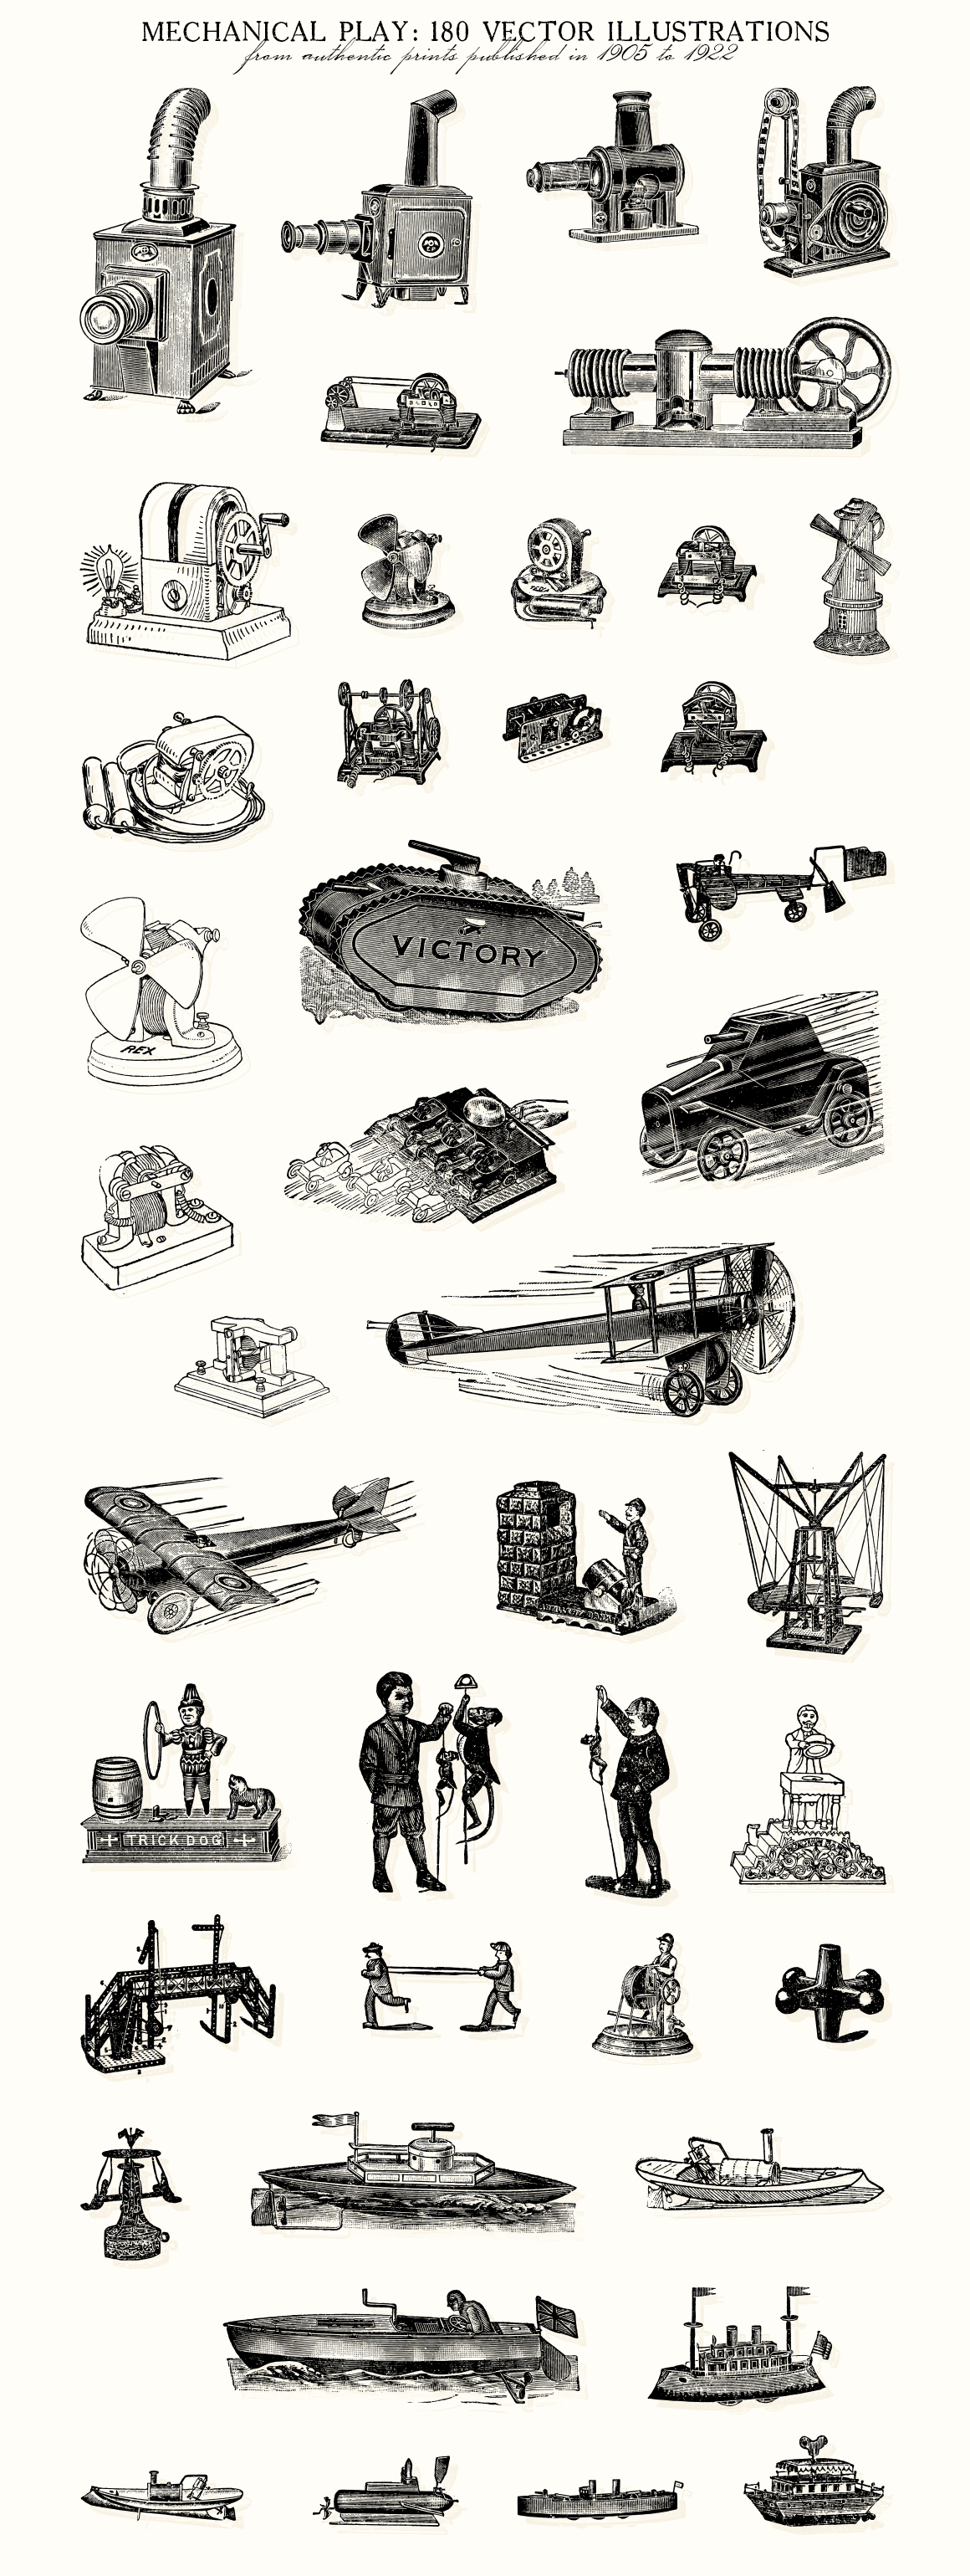 Mechanical Play: 180 Vintage Toys